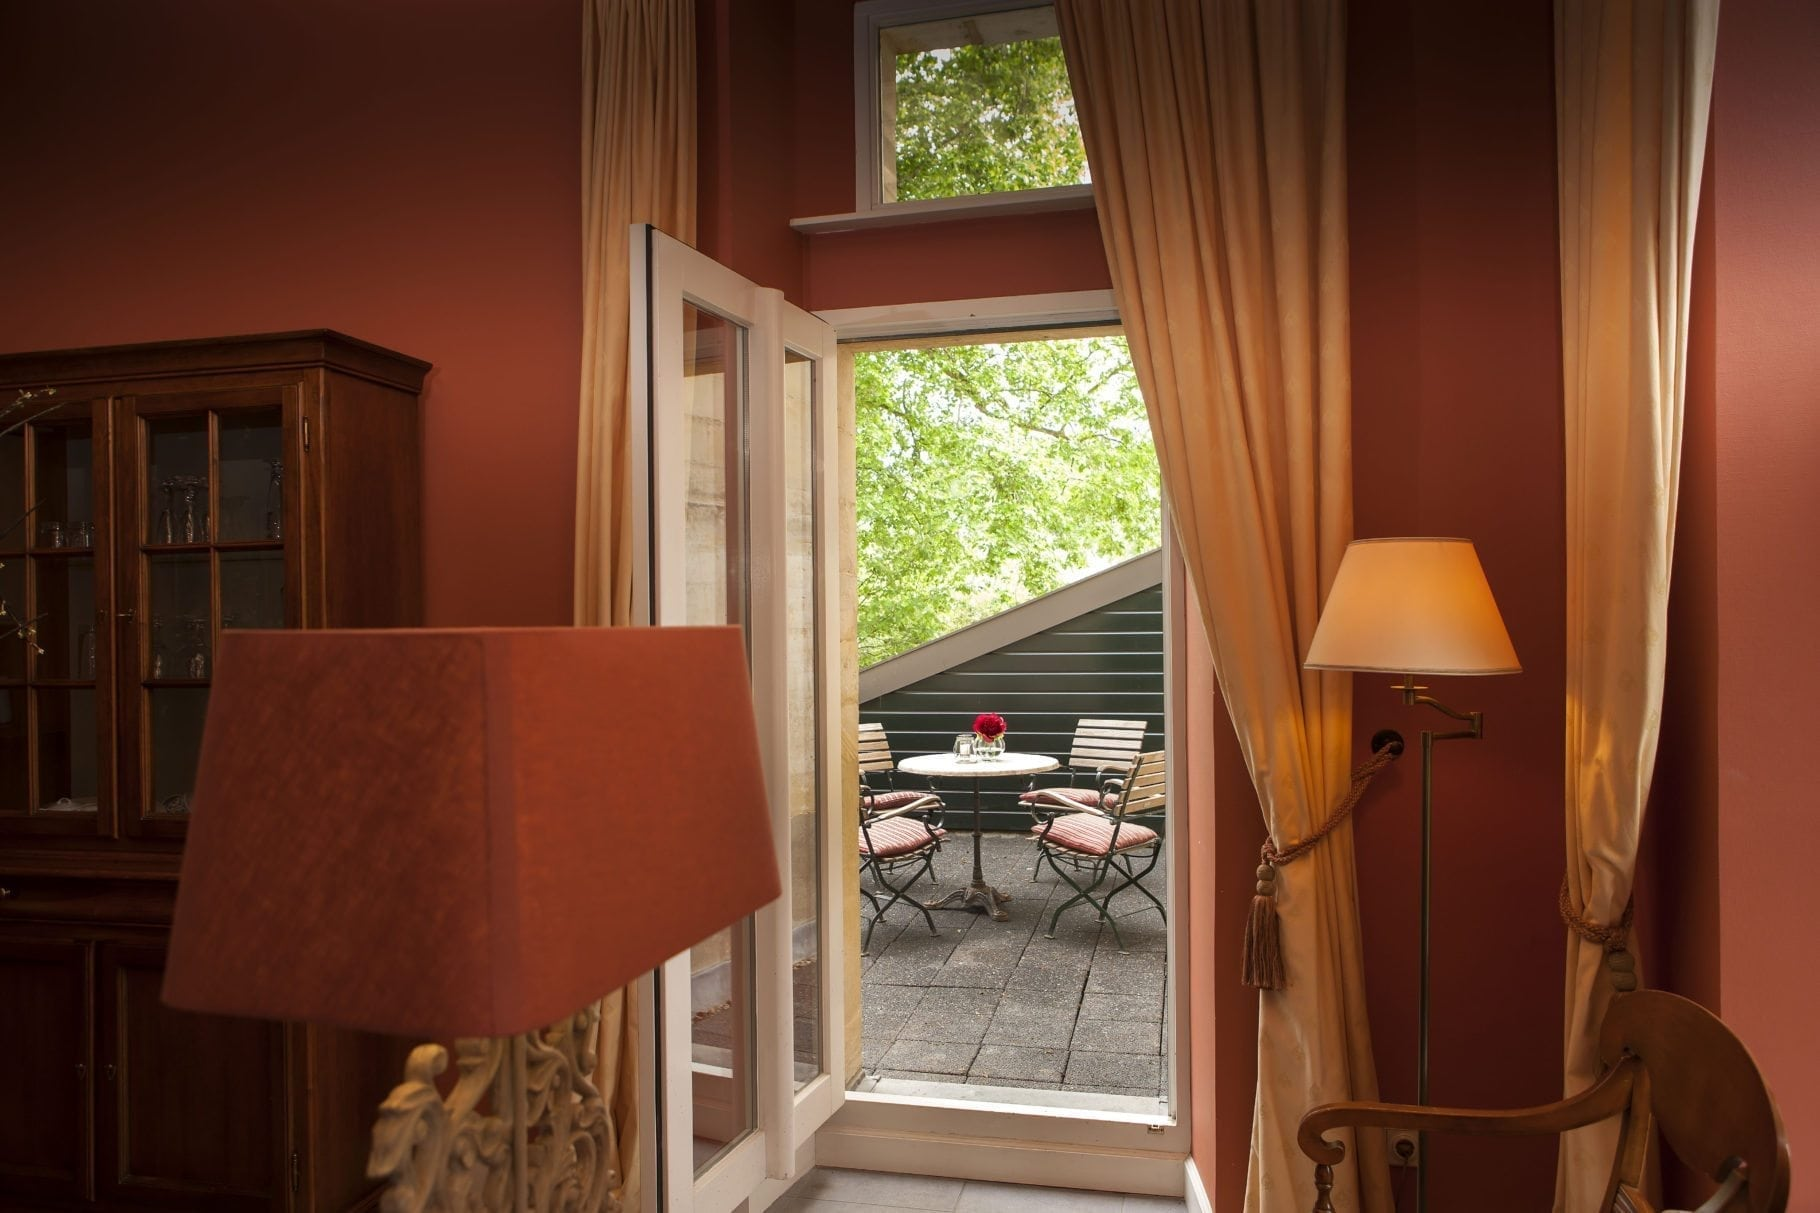 Chateau st gerlach hotelapartment